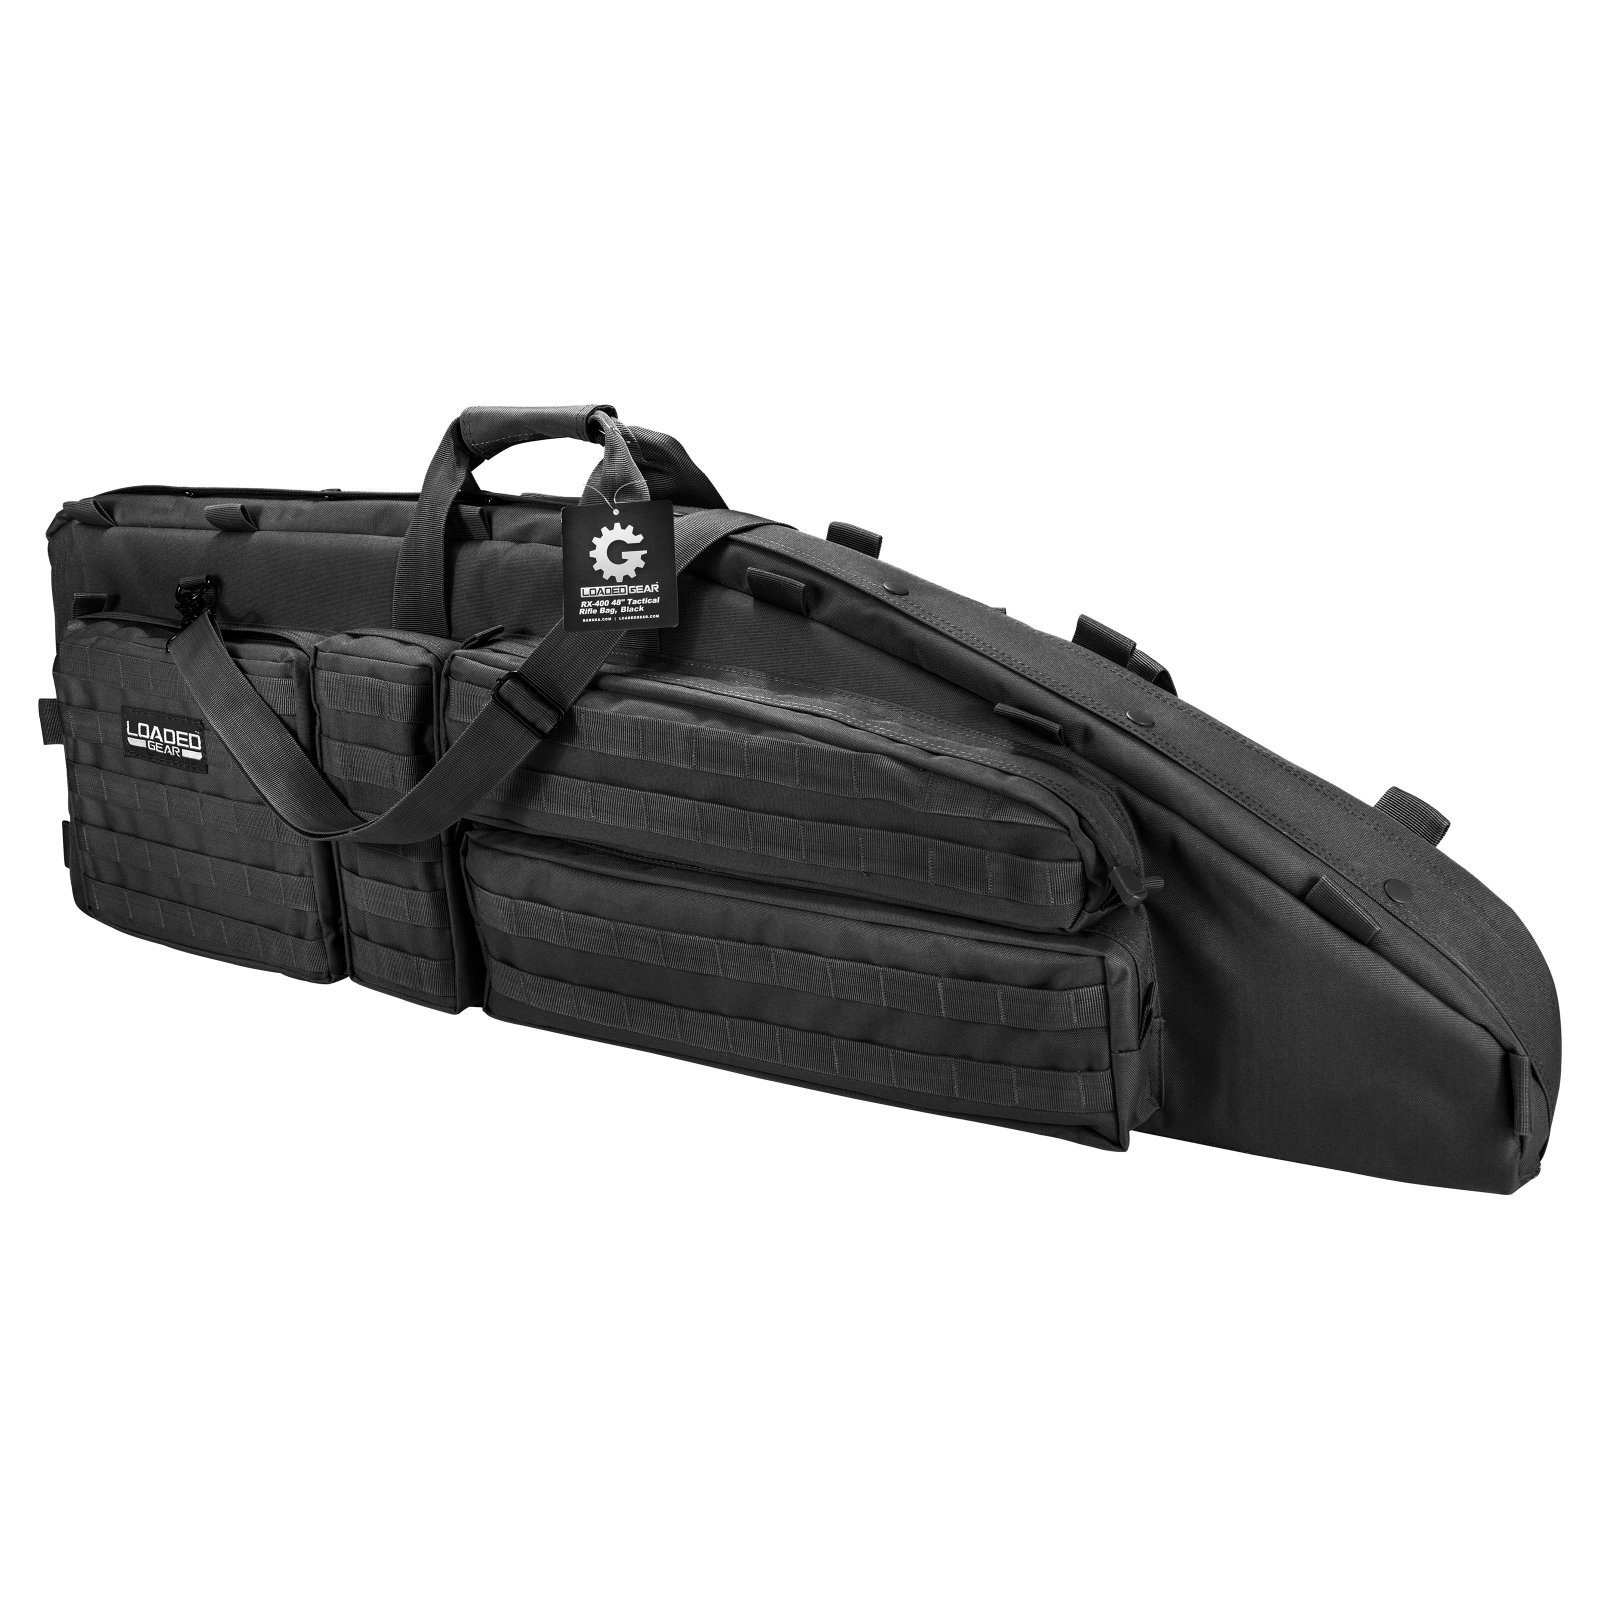 "Barska Optics RX-600 46"" Tactical Dual Rifle Bag"